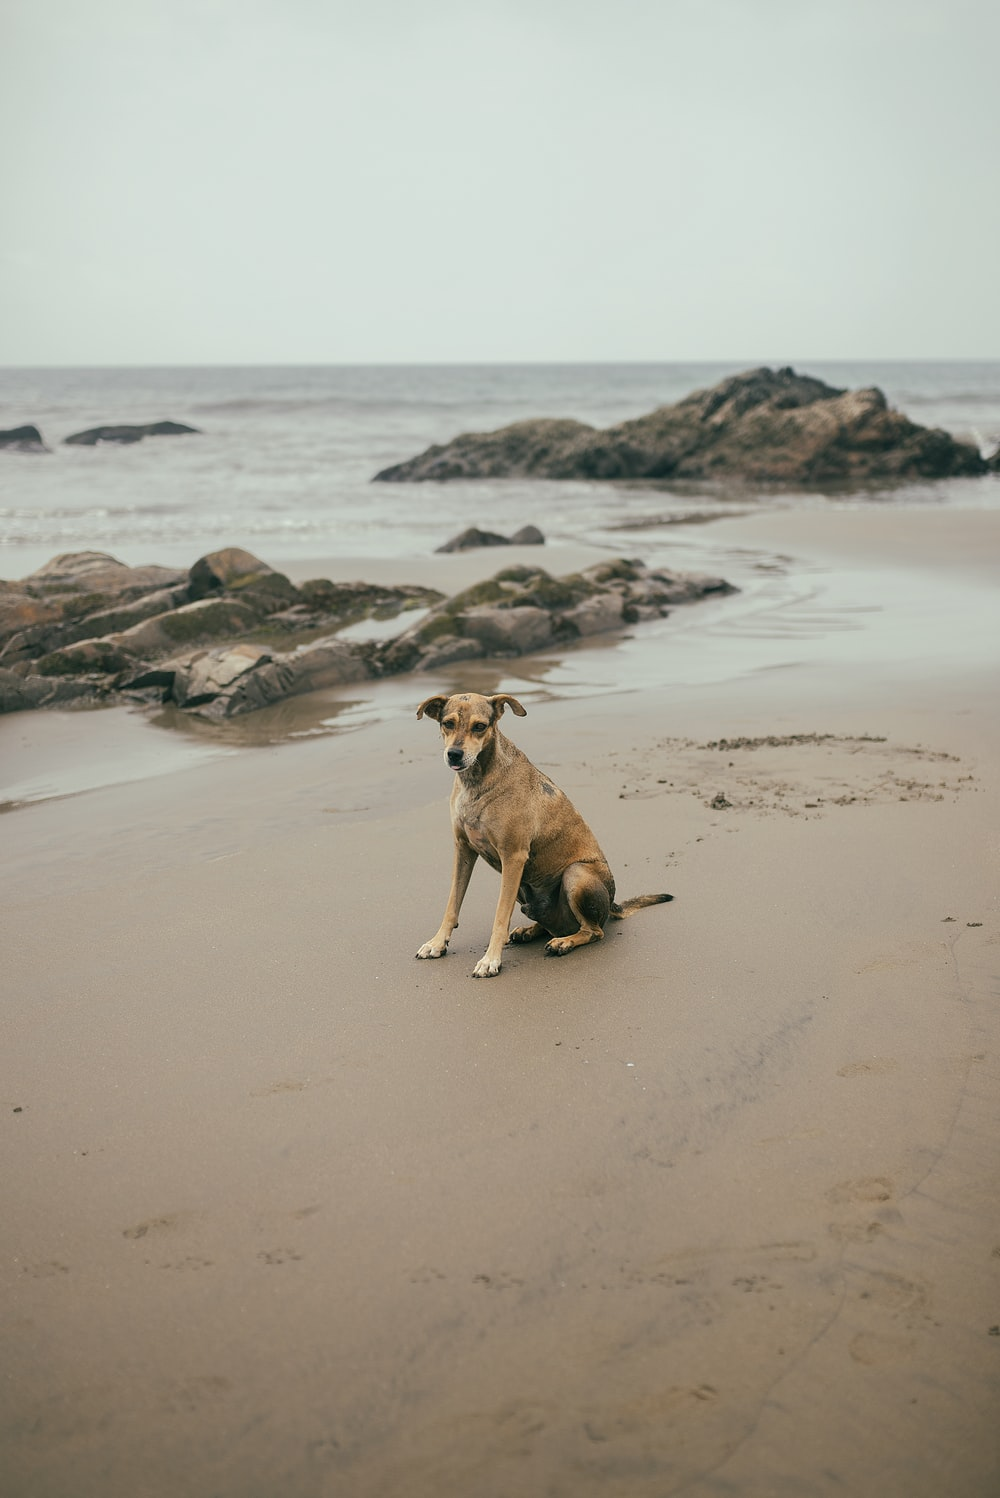 brown short coated dog on brown sand near body of water during daytime